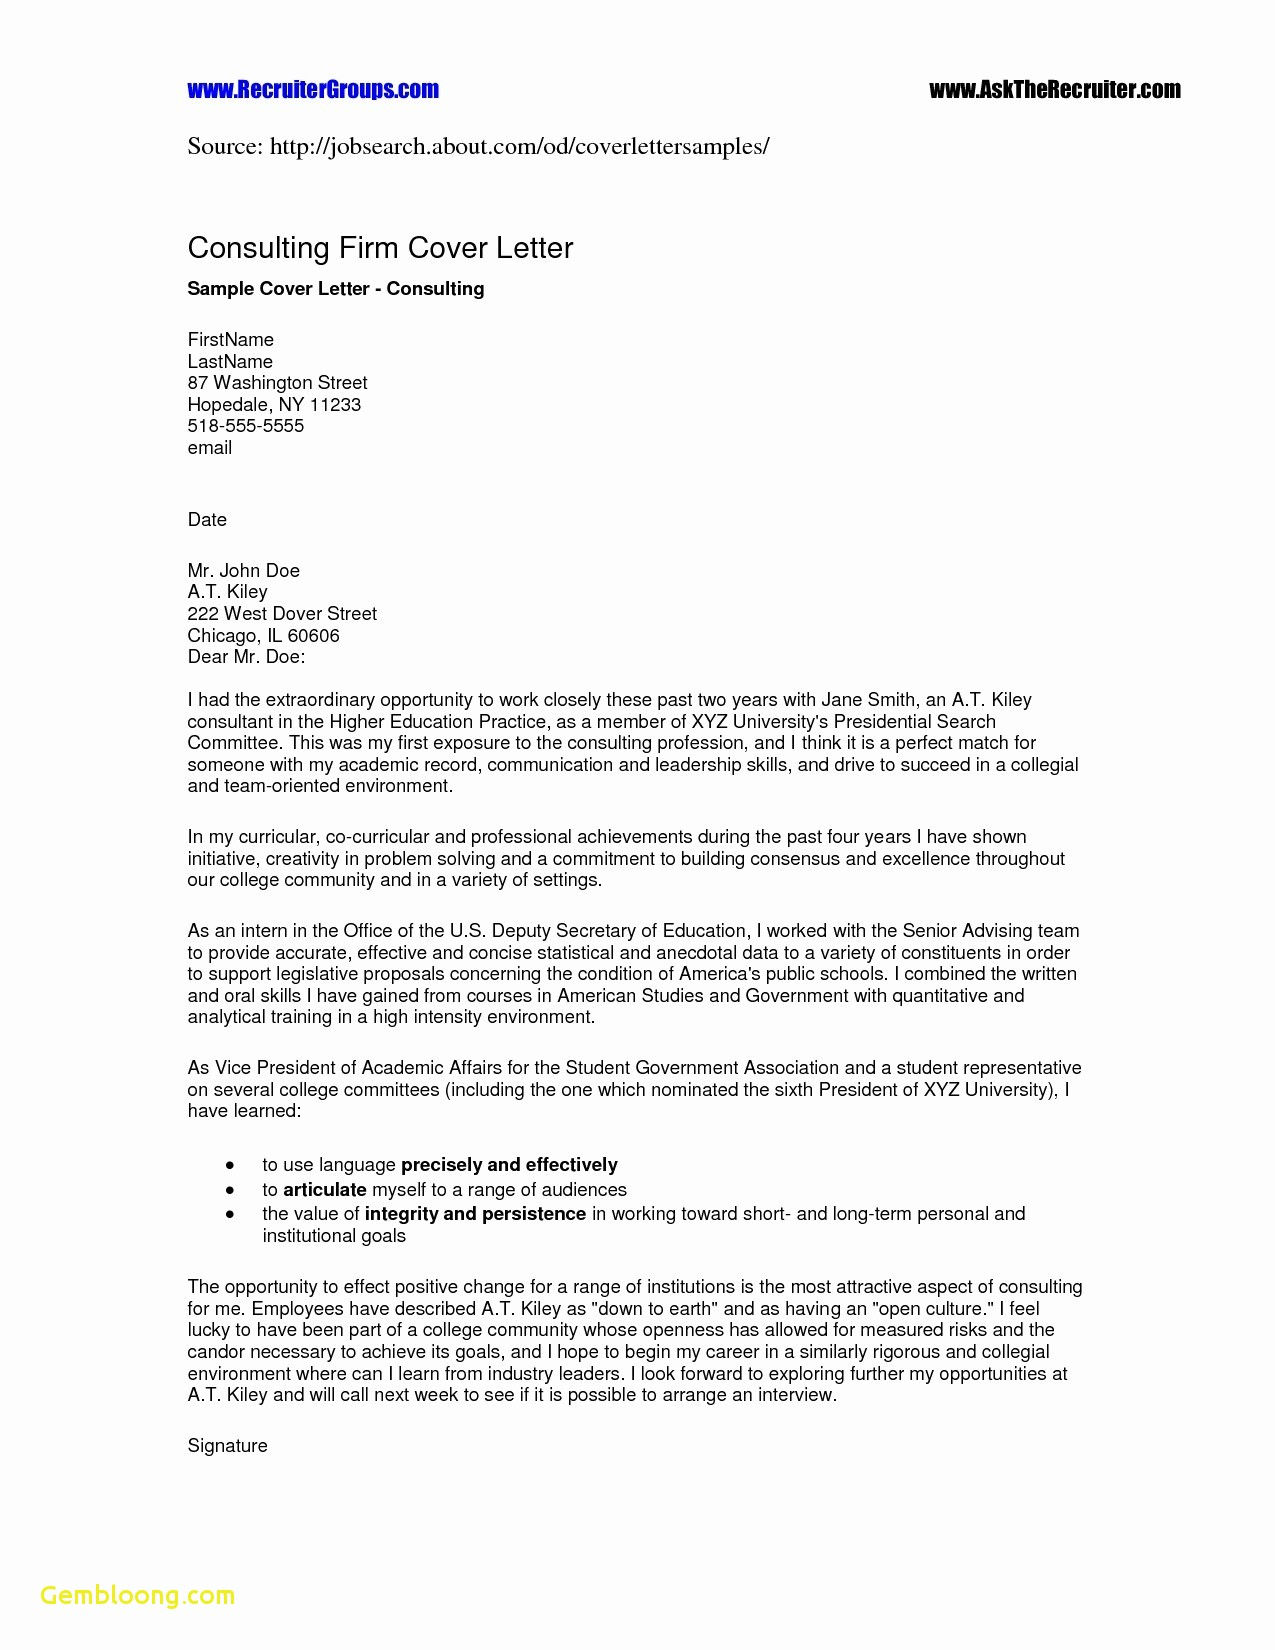 Relocation Cover Letter Template Free - Cover Letter Relocation Due to Spouse Teacher Cover Letter Template